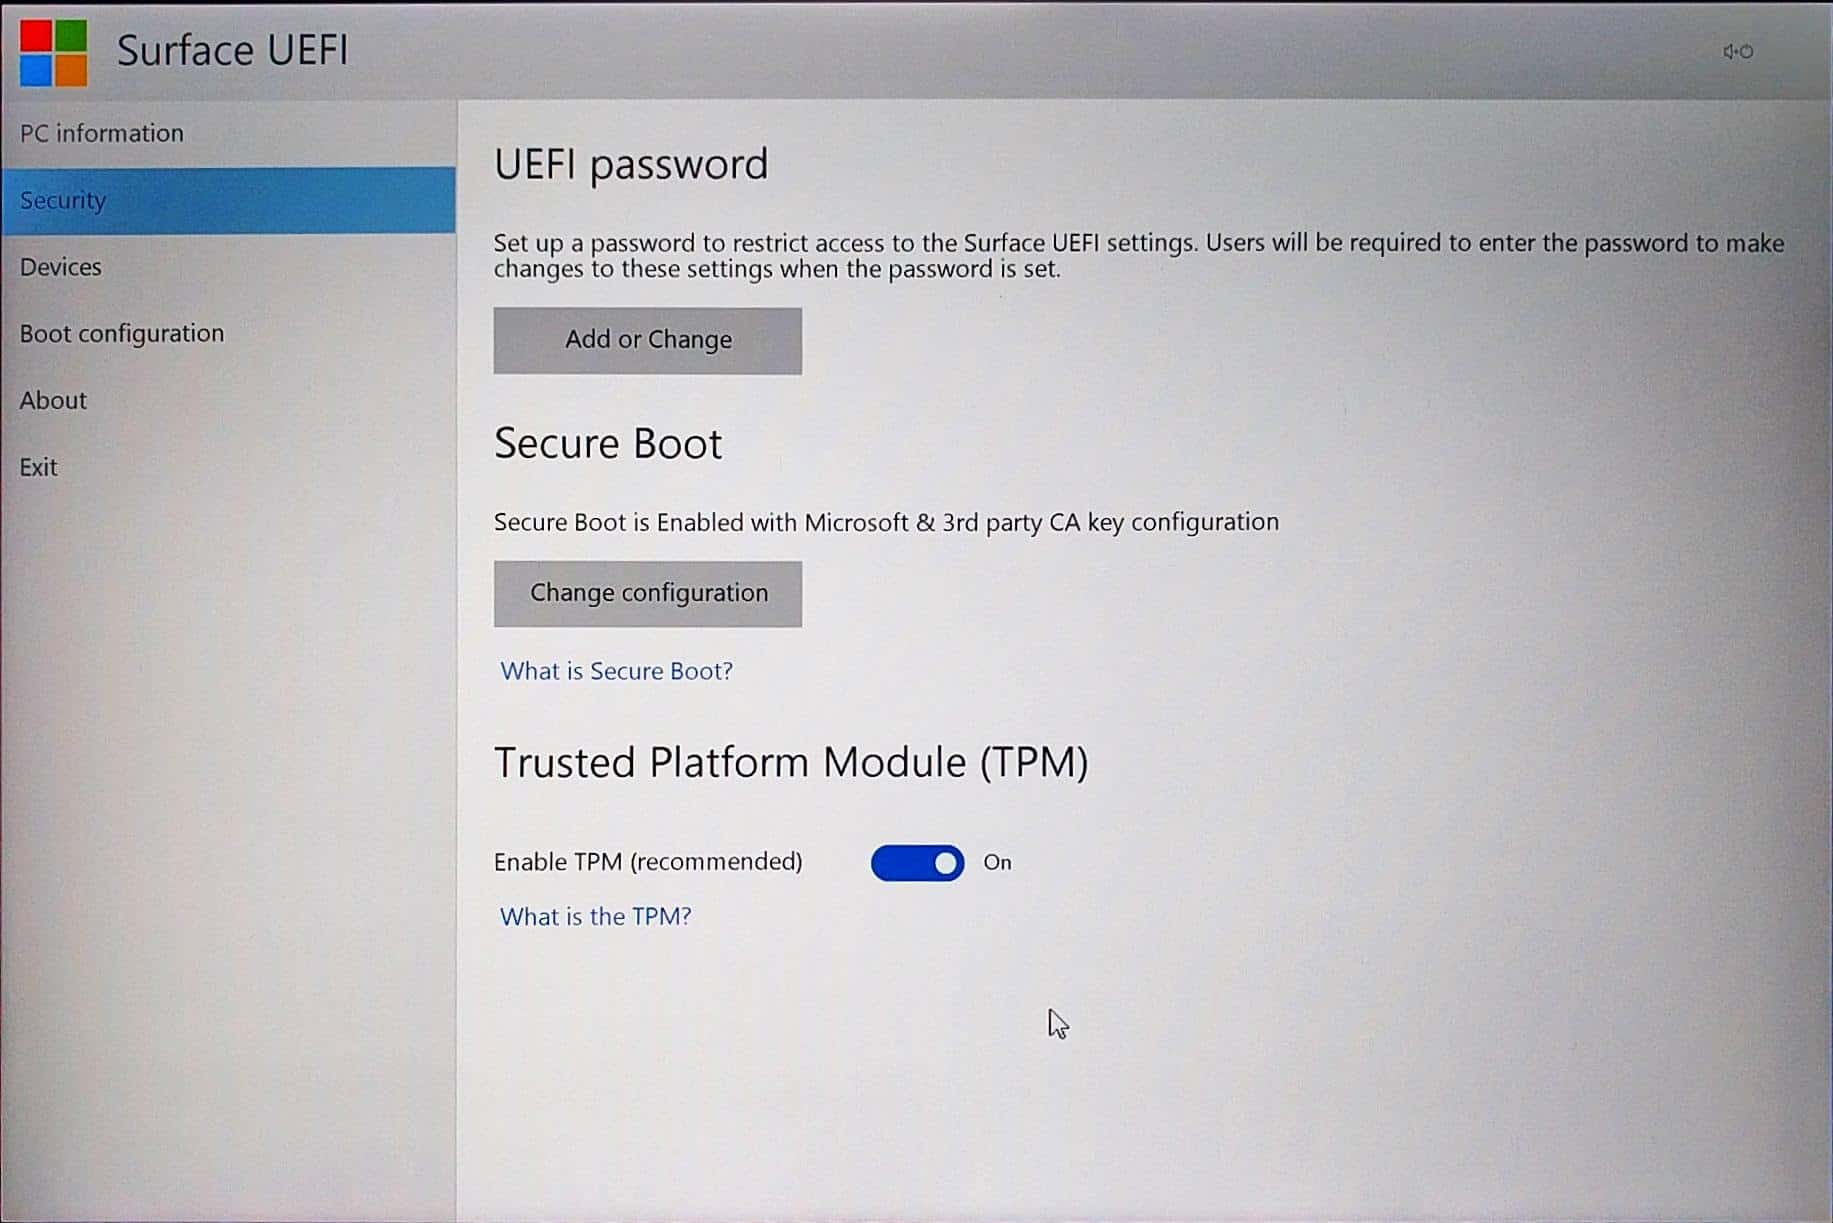 Surface Pro 4 - UEFI - Security